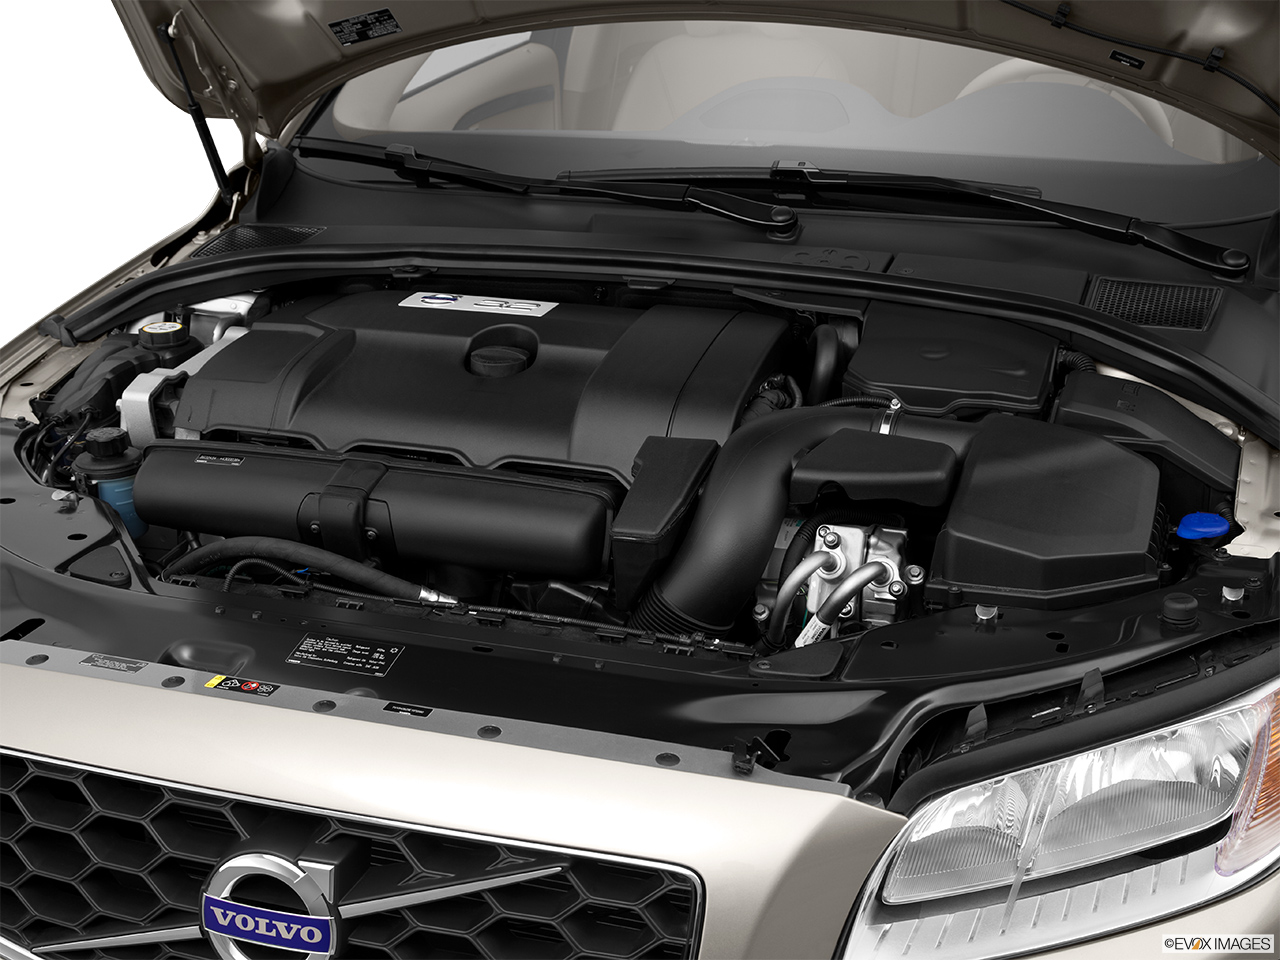 2014 Volvo XC70 3.2 AWD Premier Plus Engine.